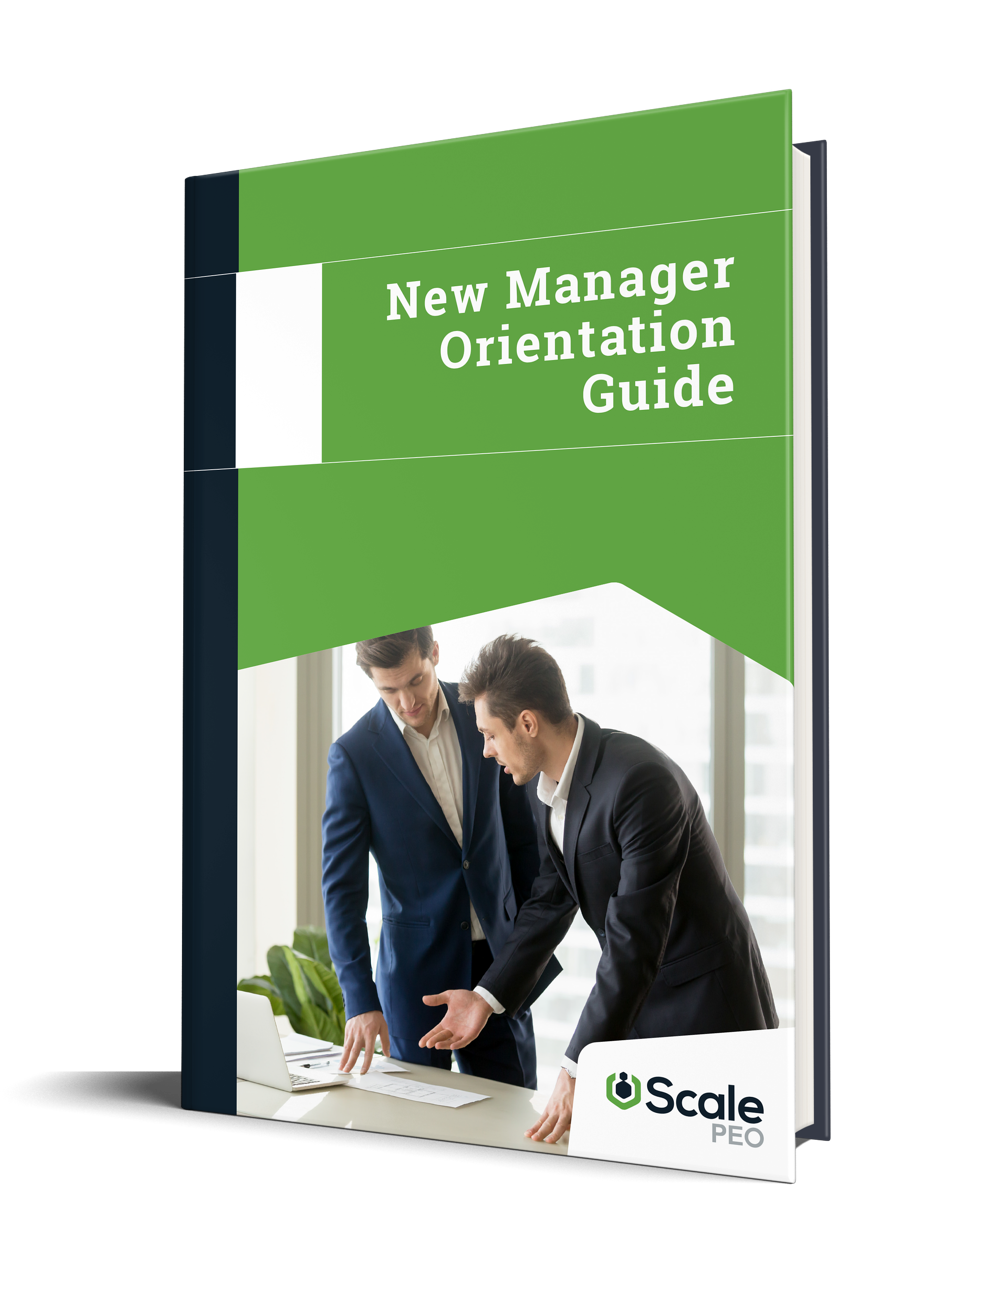 scalepeo-new-manager-orientation-guide-cover-image-portrait